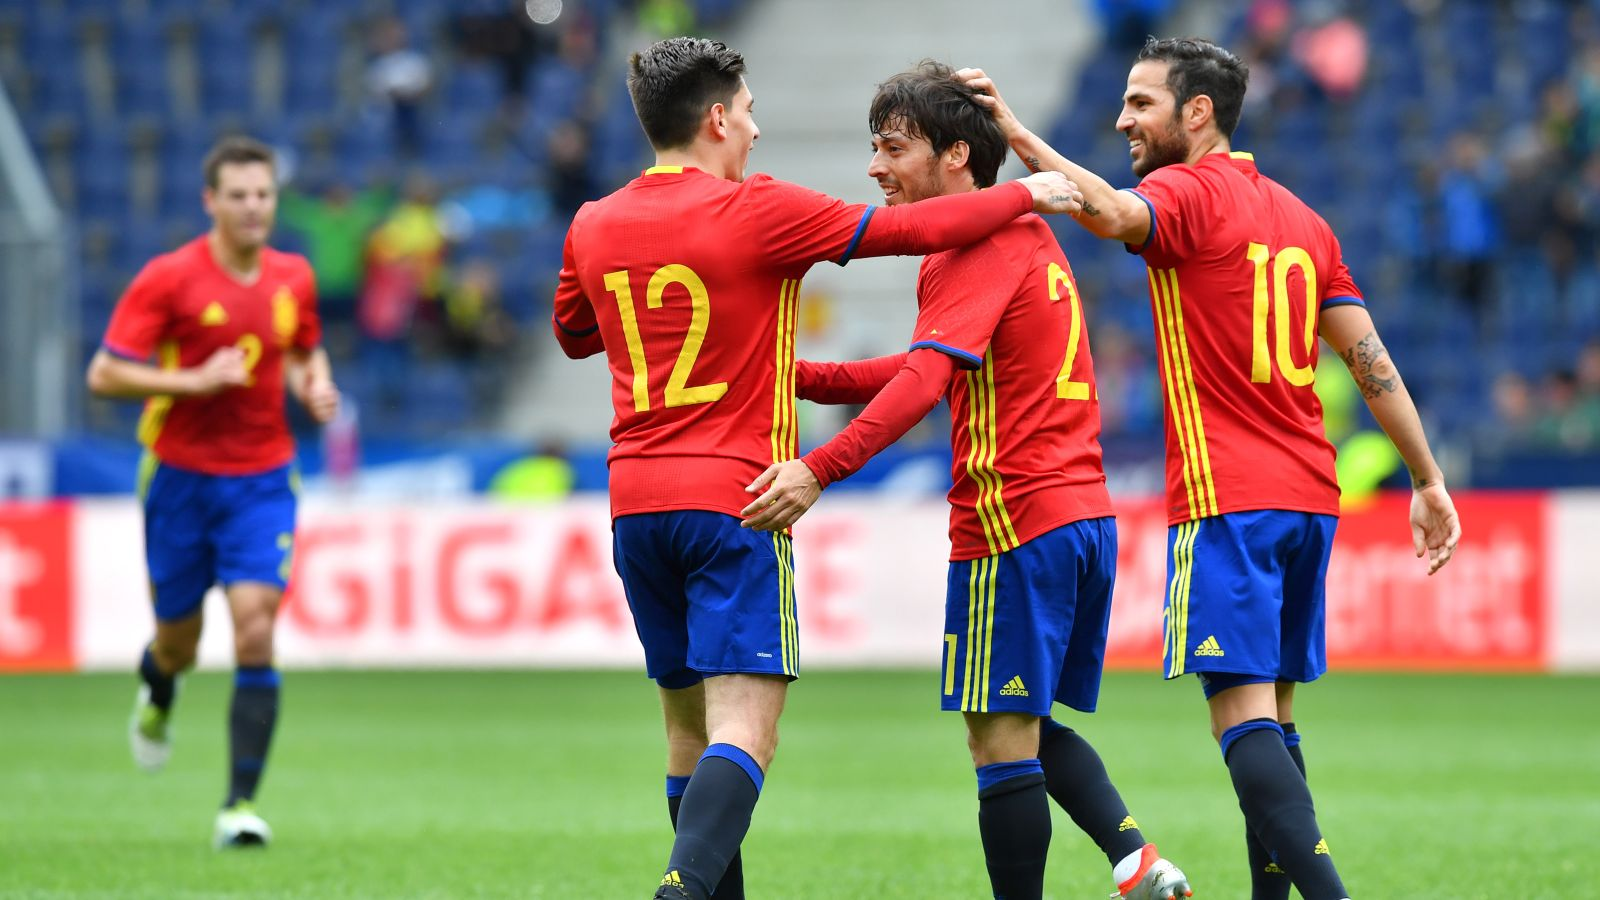 Del Bosque says defending champs Spain 'ready' for Euro 2016